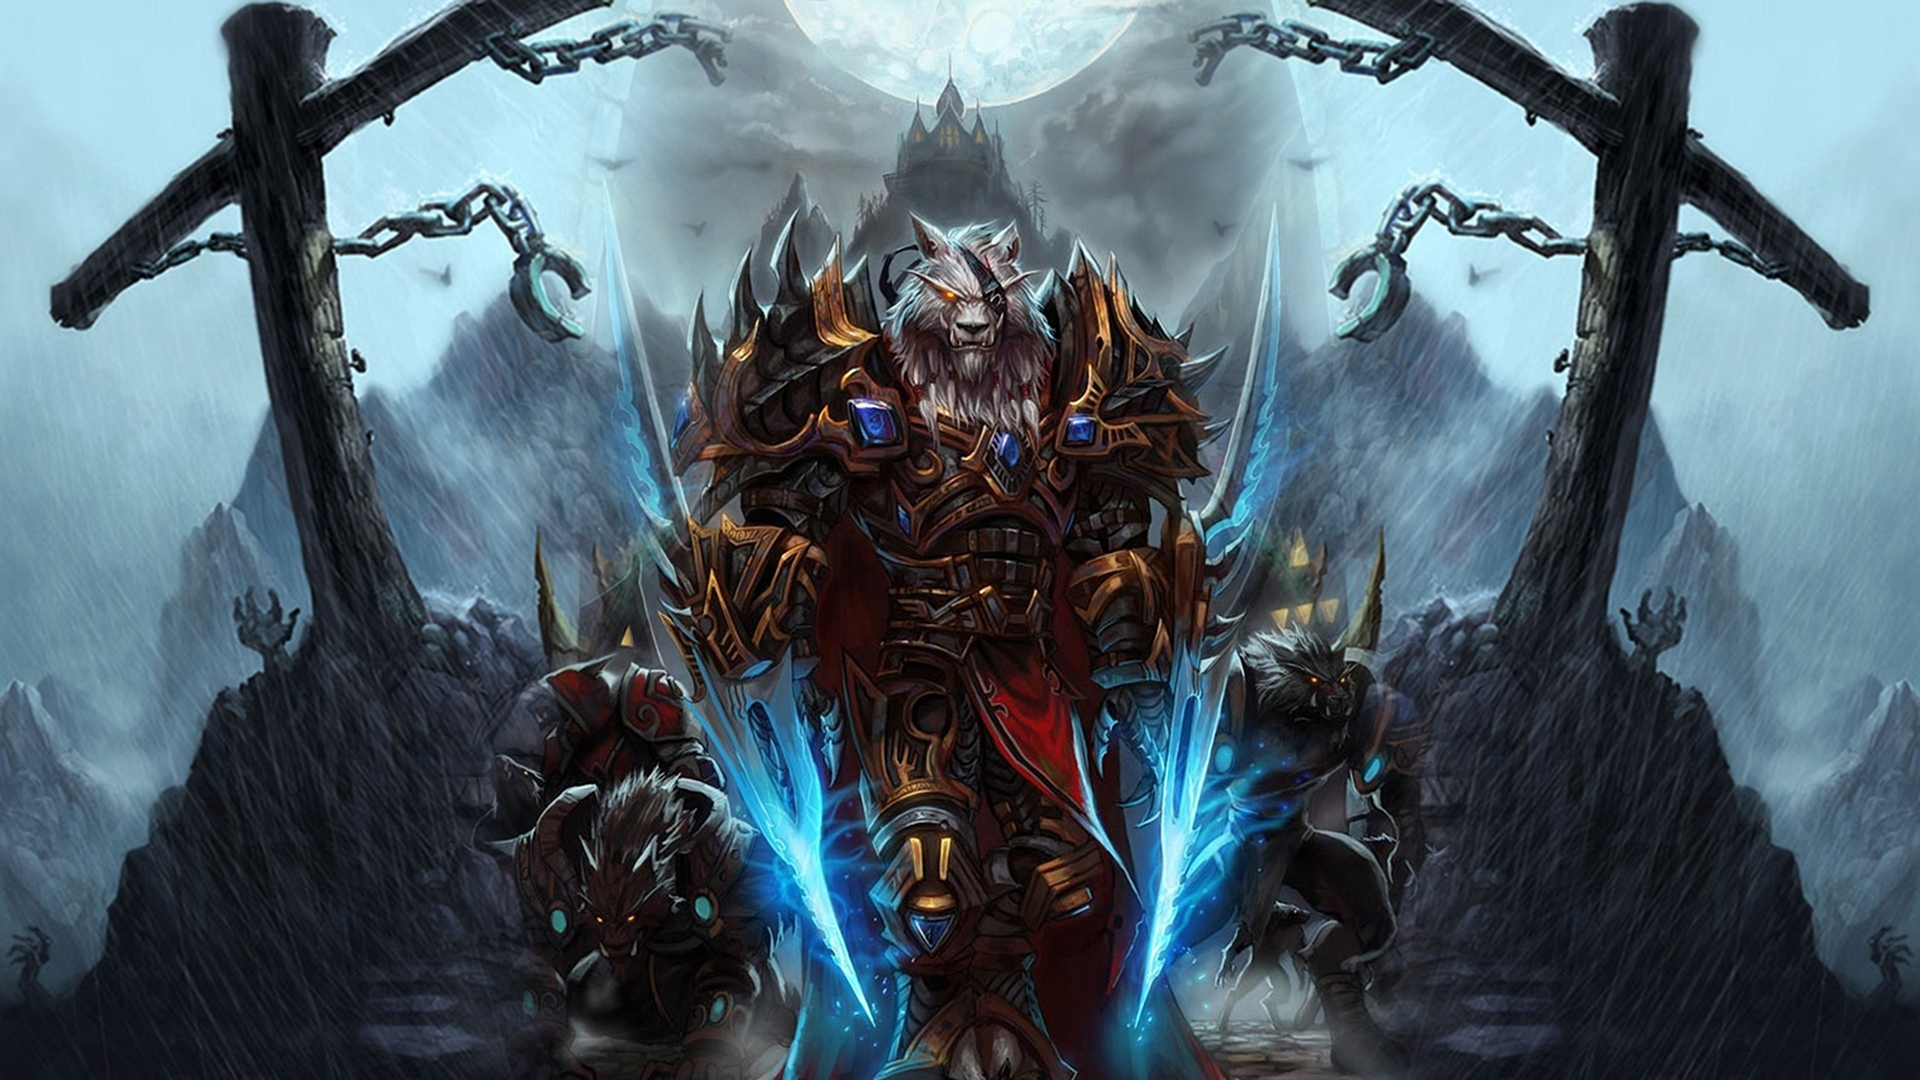 télécharger 1920x1080 full hd fond d'écran world of warcraft loup